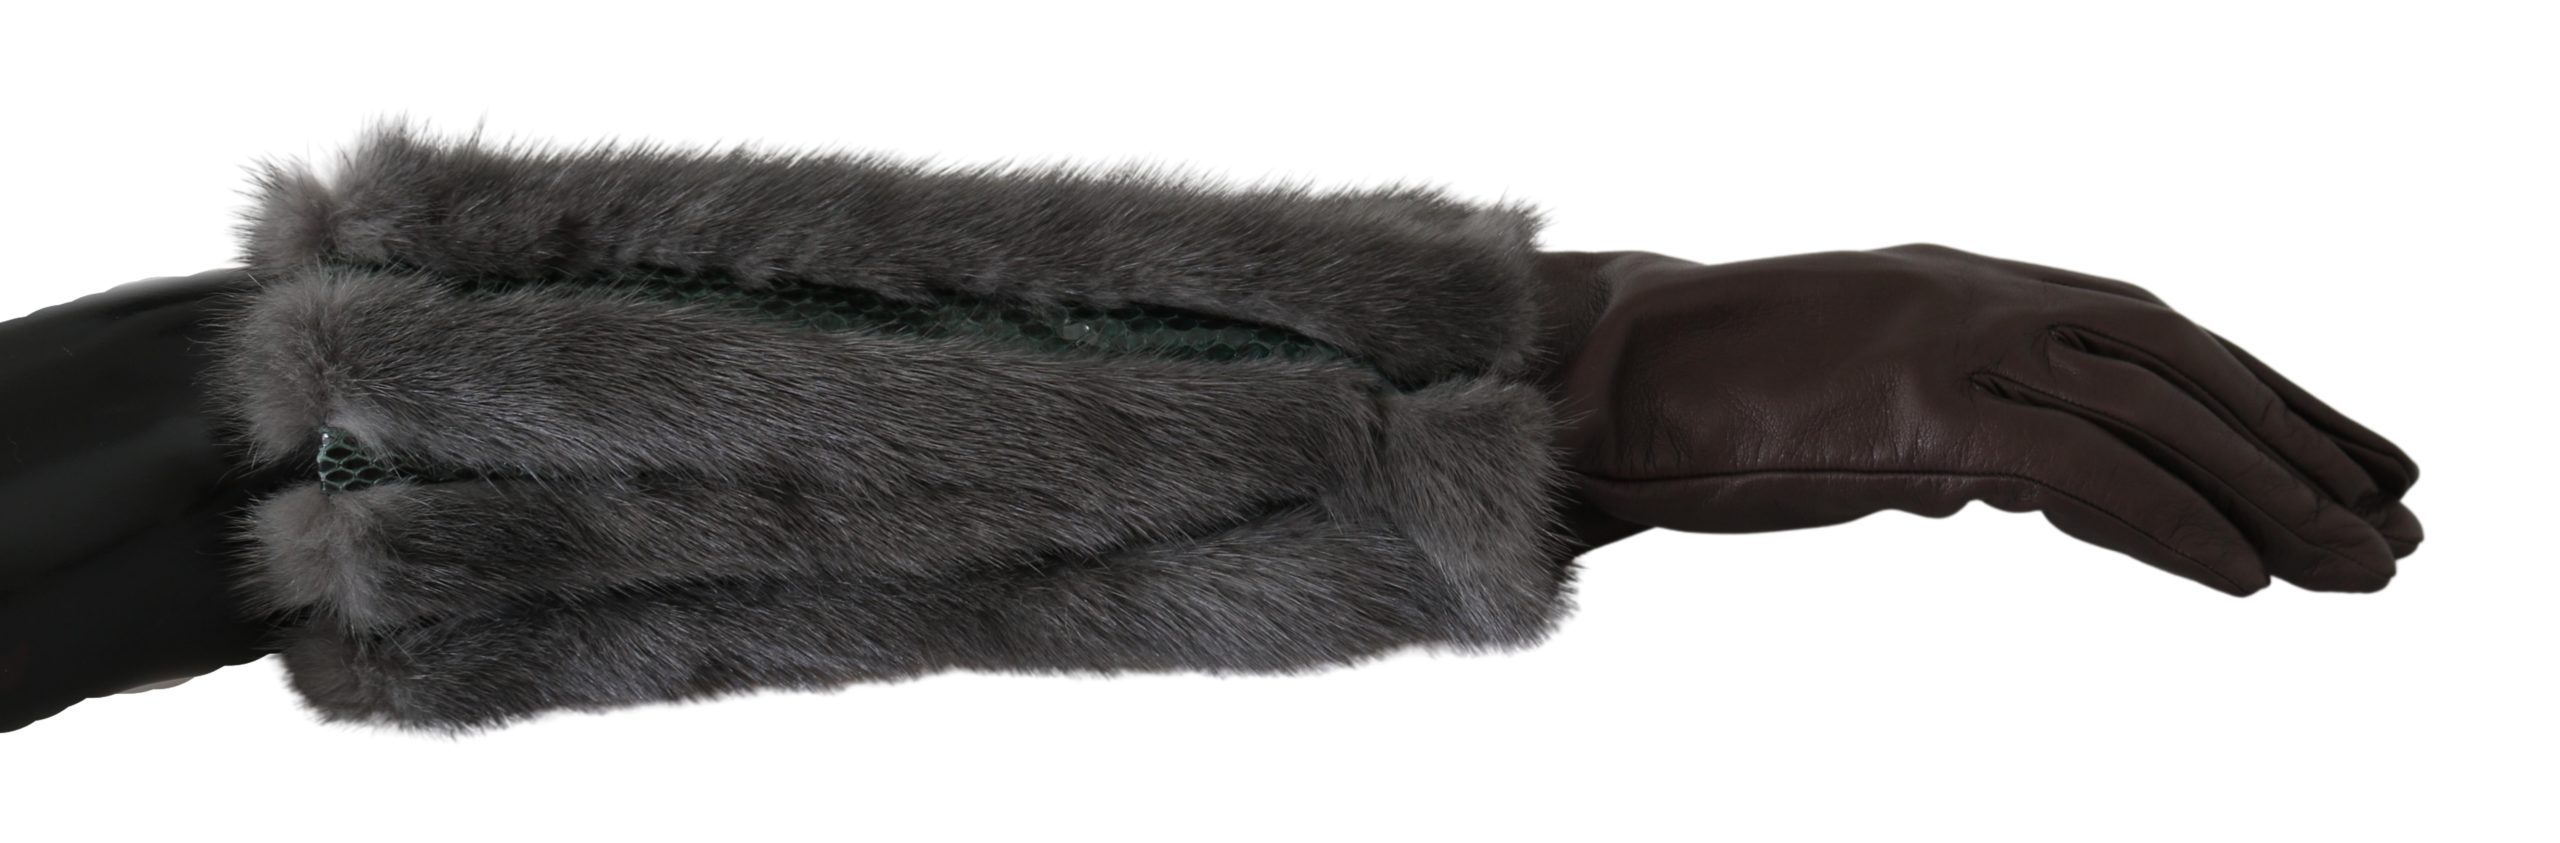 Dolce & Gabbana Women's Mid Arm Length Leather Fur Gloves Brown LB1011 - 7.5|S